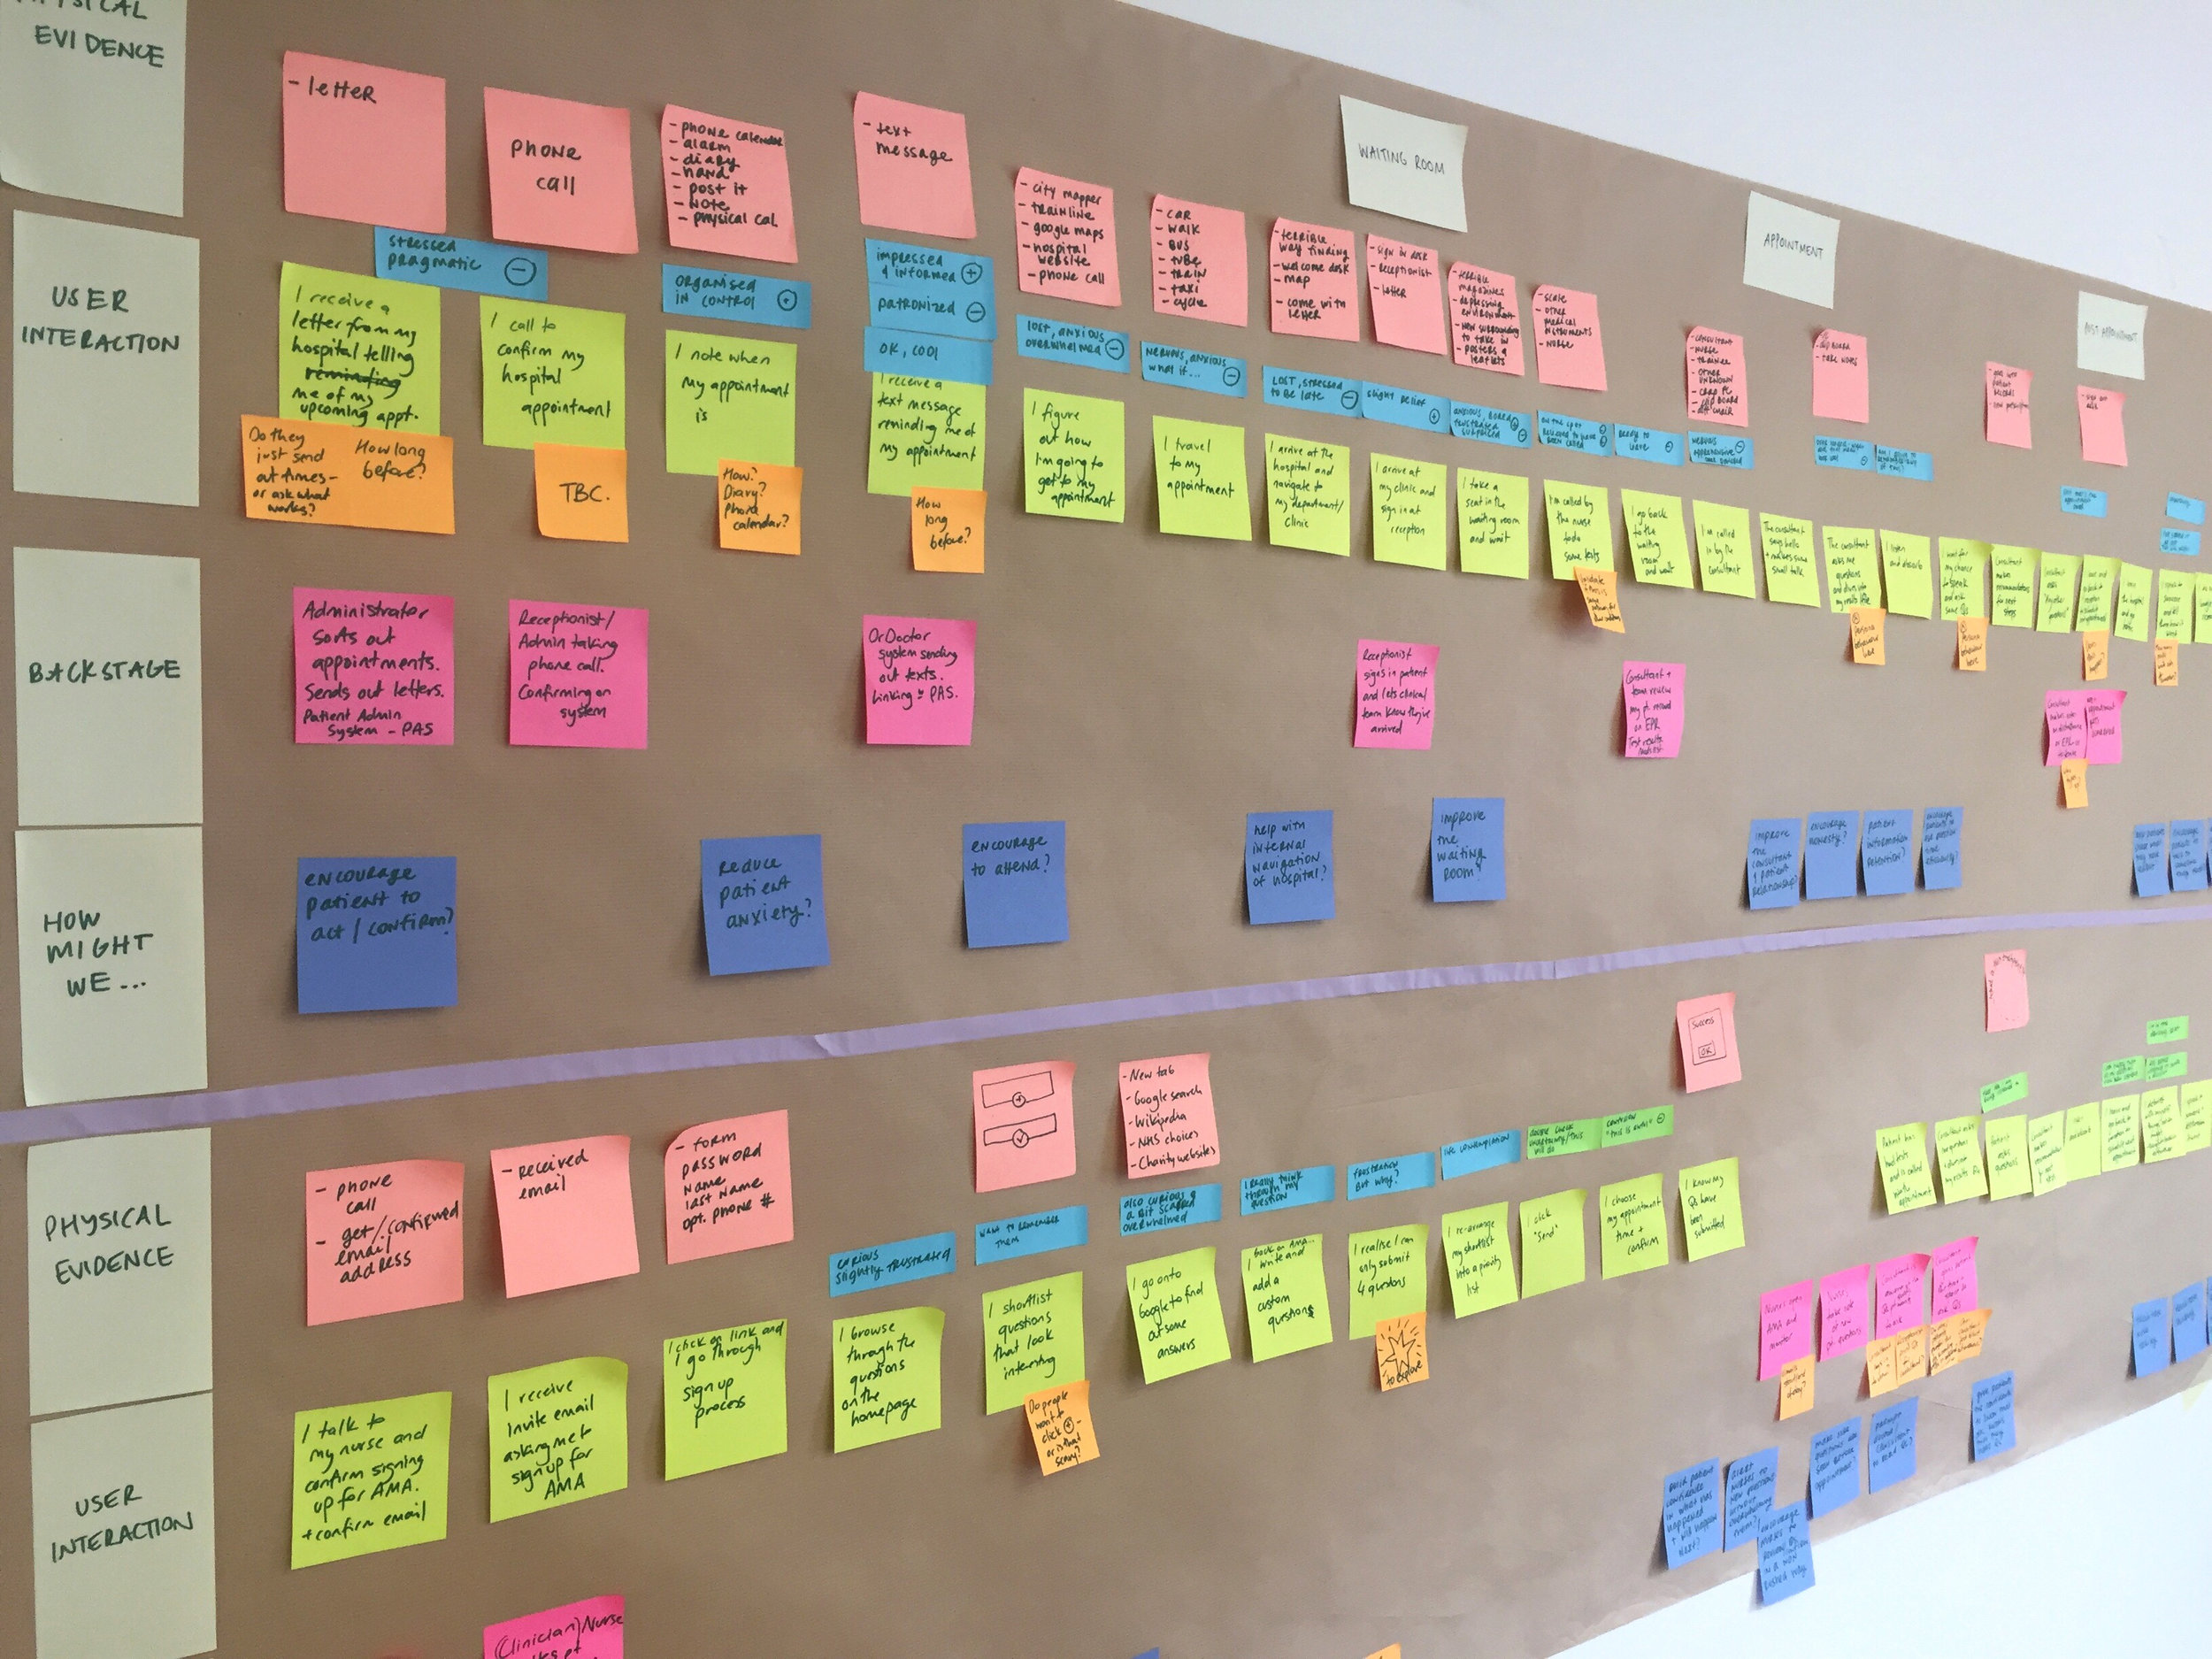 User journey map of the current consultation experience: identifying pain points and opportunity areas